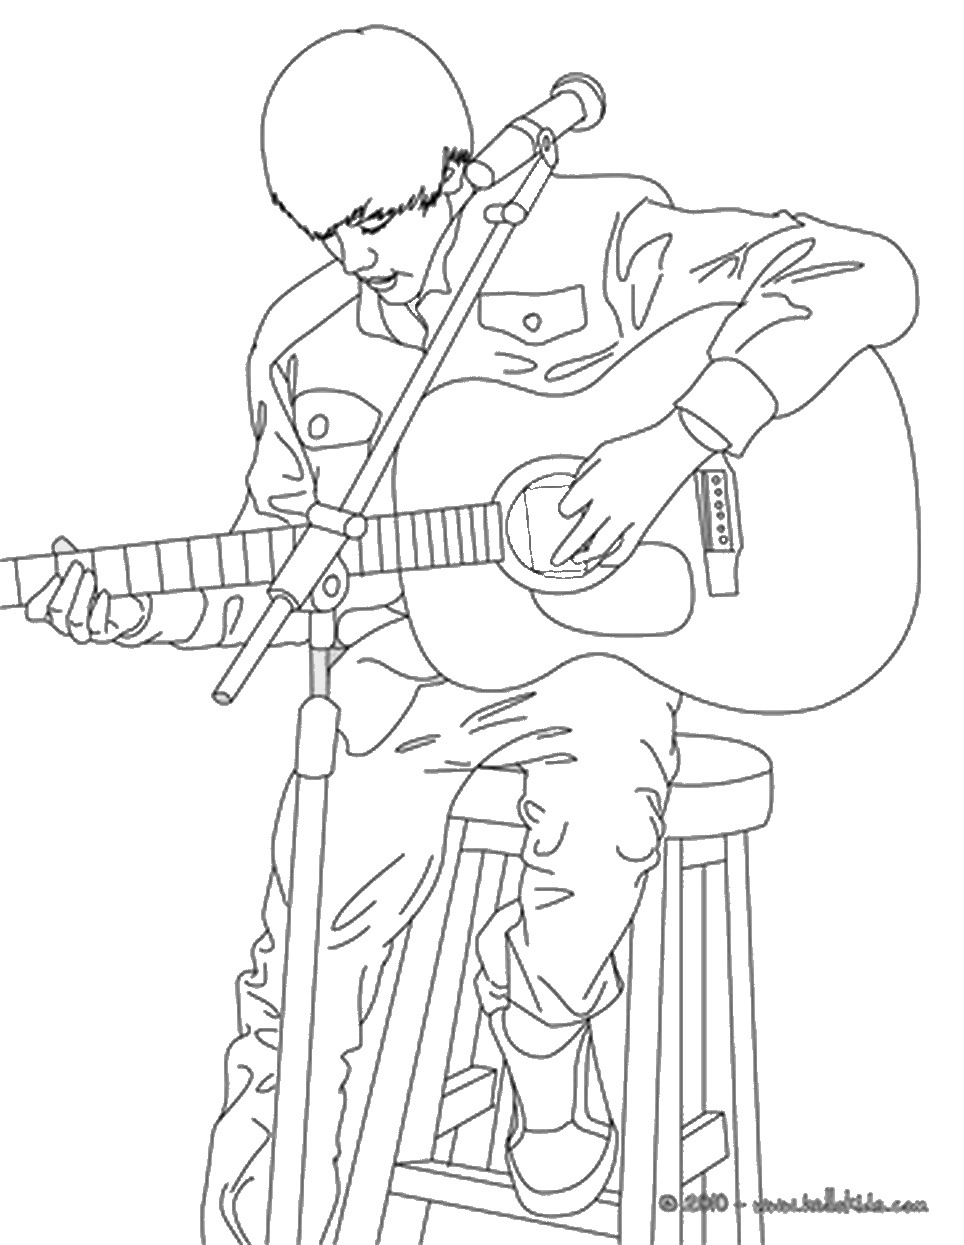 american idol coloring pages - photo#5